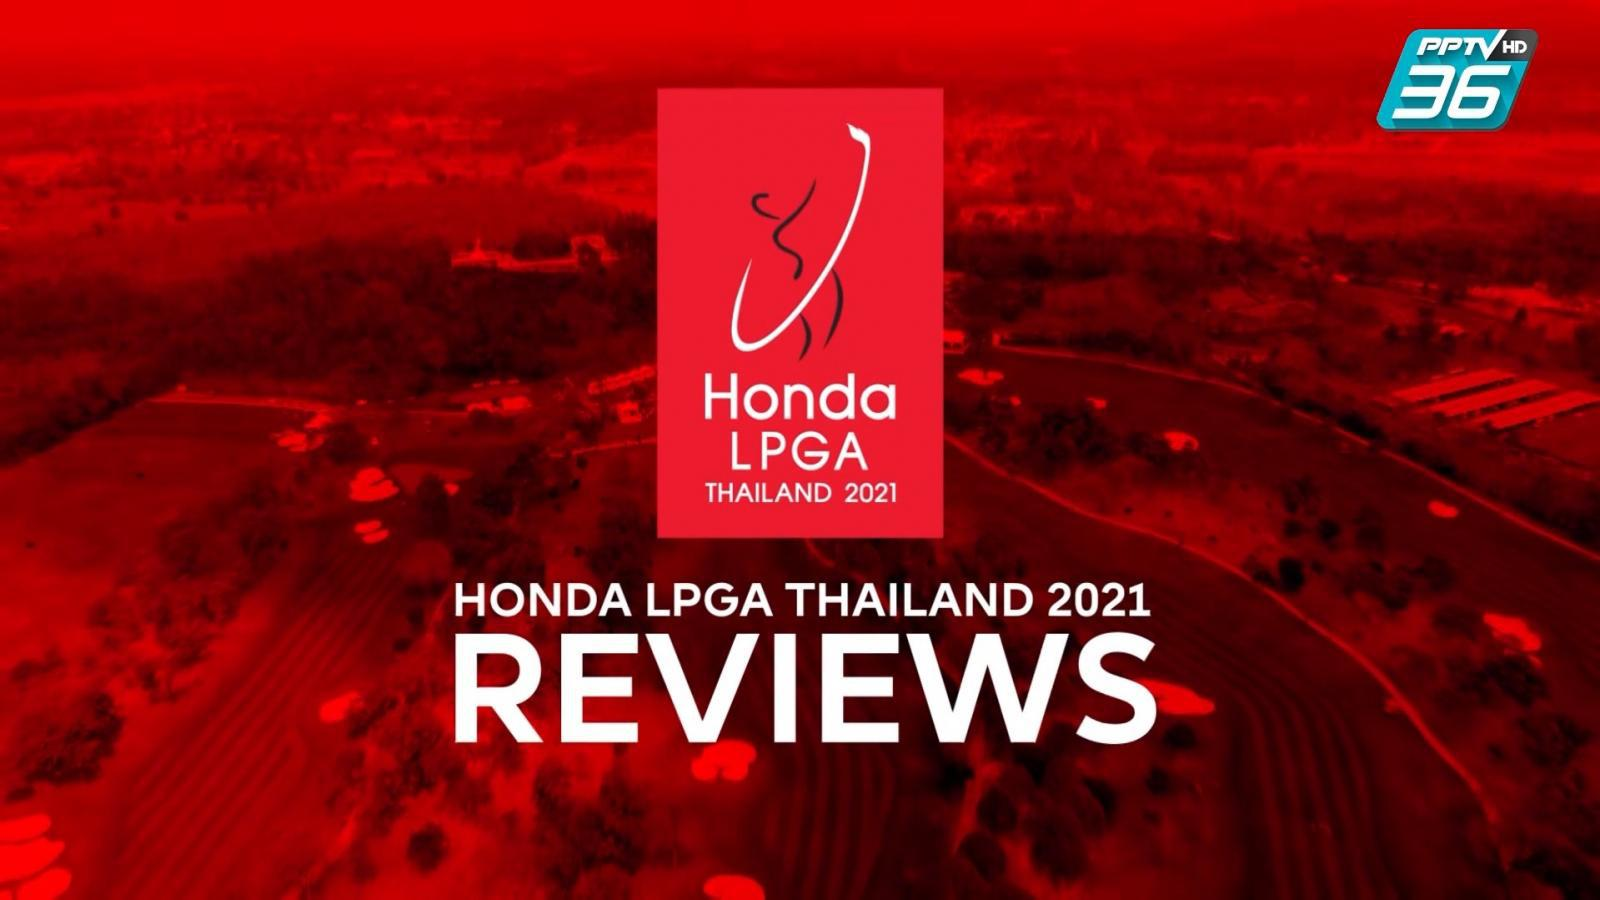 Honda LPGA Thailand 2021 Reviews : ตอนที่ 2